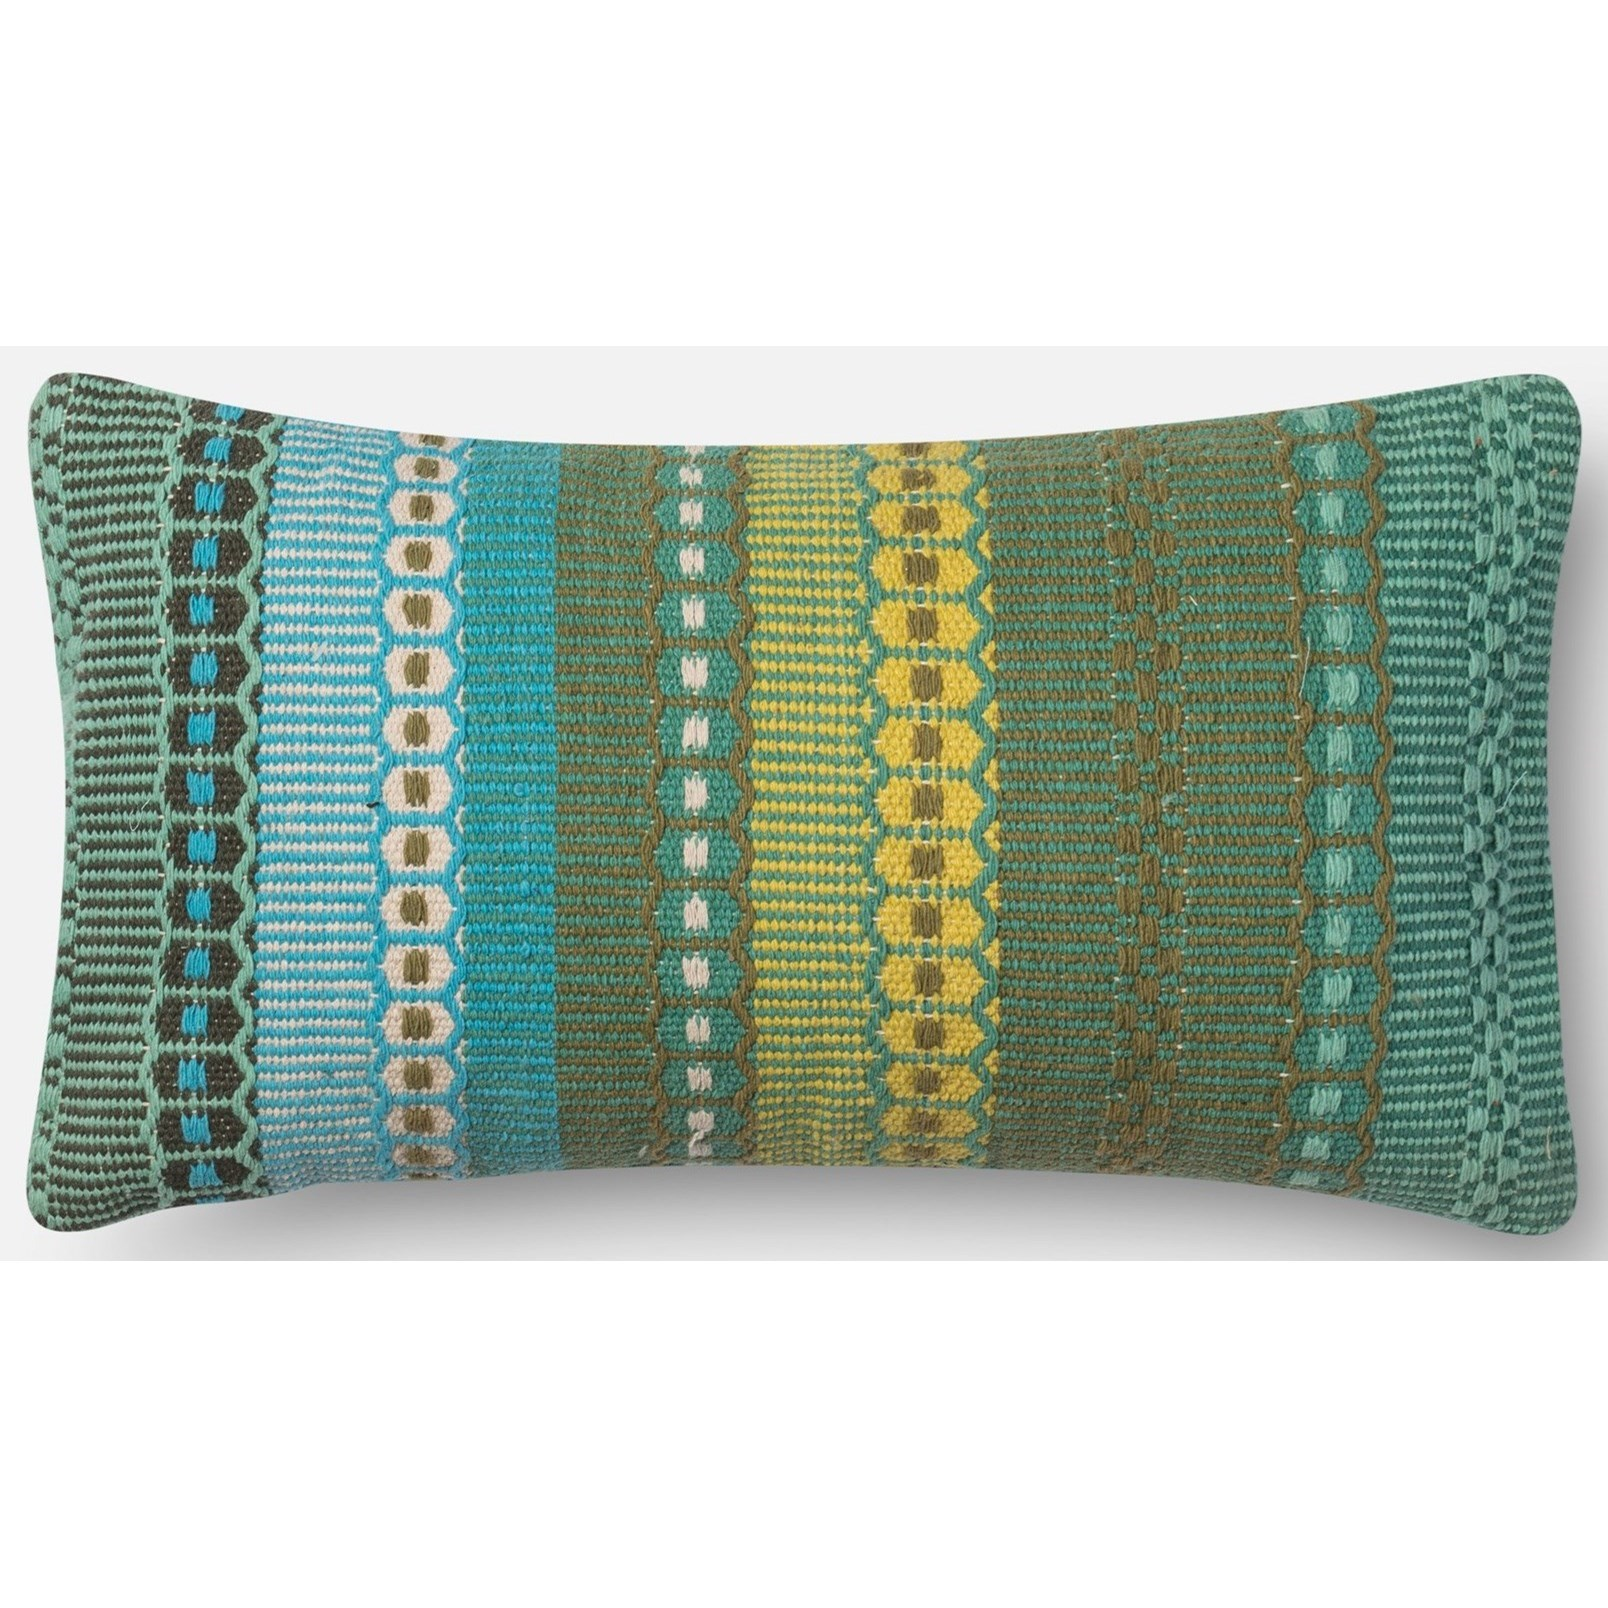 "Accent Pillows 1' X 1'-10"" Down Pillow by Loloi Rugs at Sprintz Furniture"